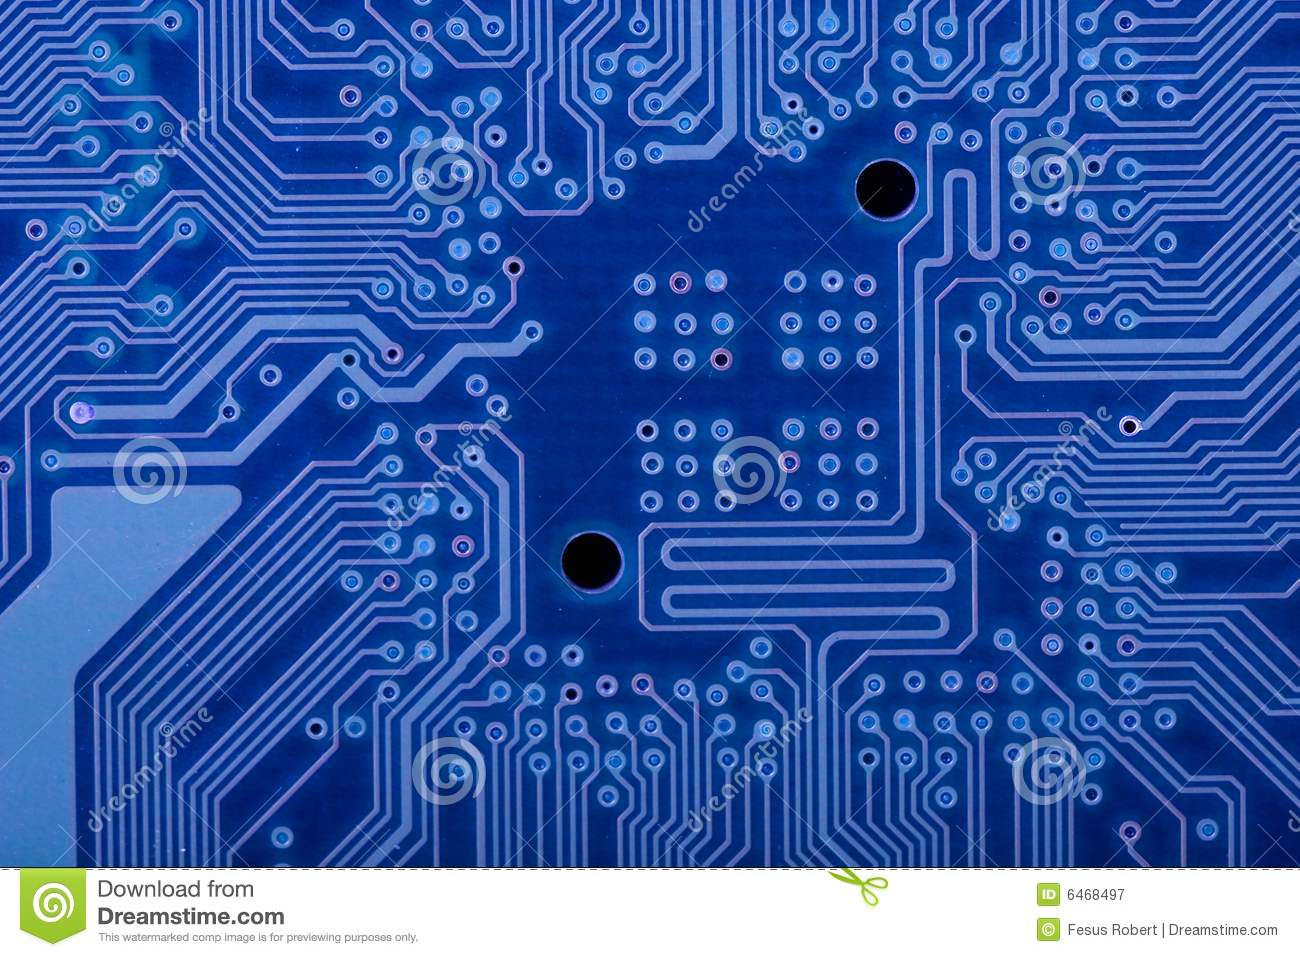 Similiar Blue Circuit Board Graphic Keywords Stock Images Image 31188634 Royalty Free Photography